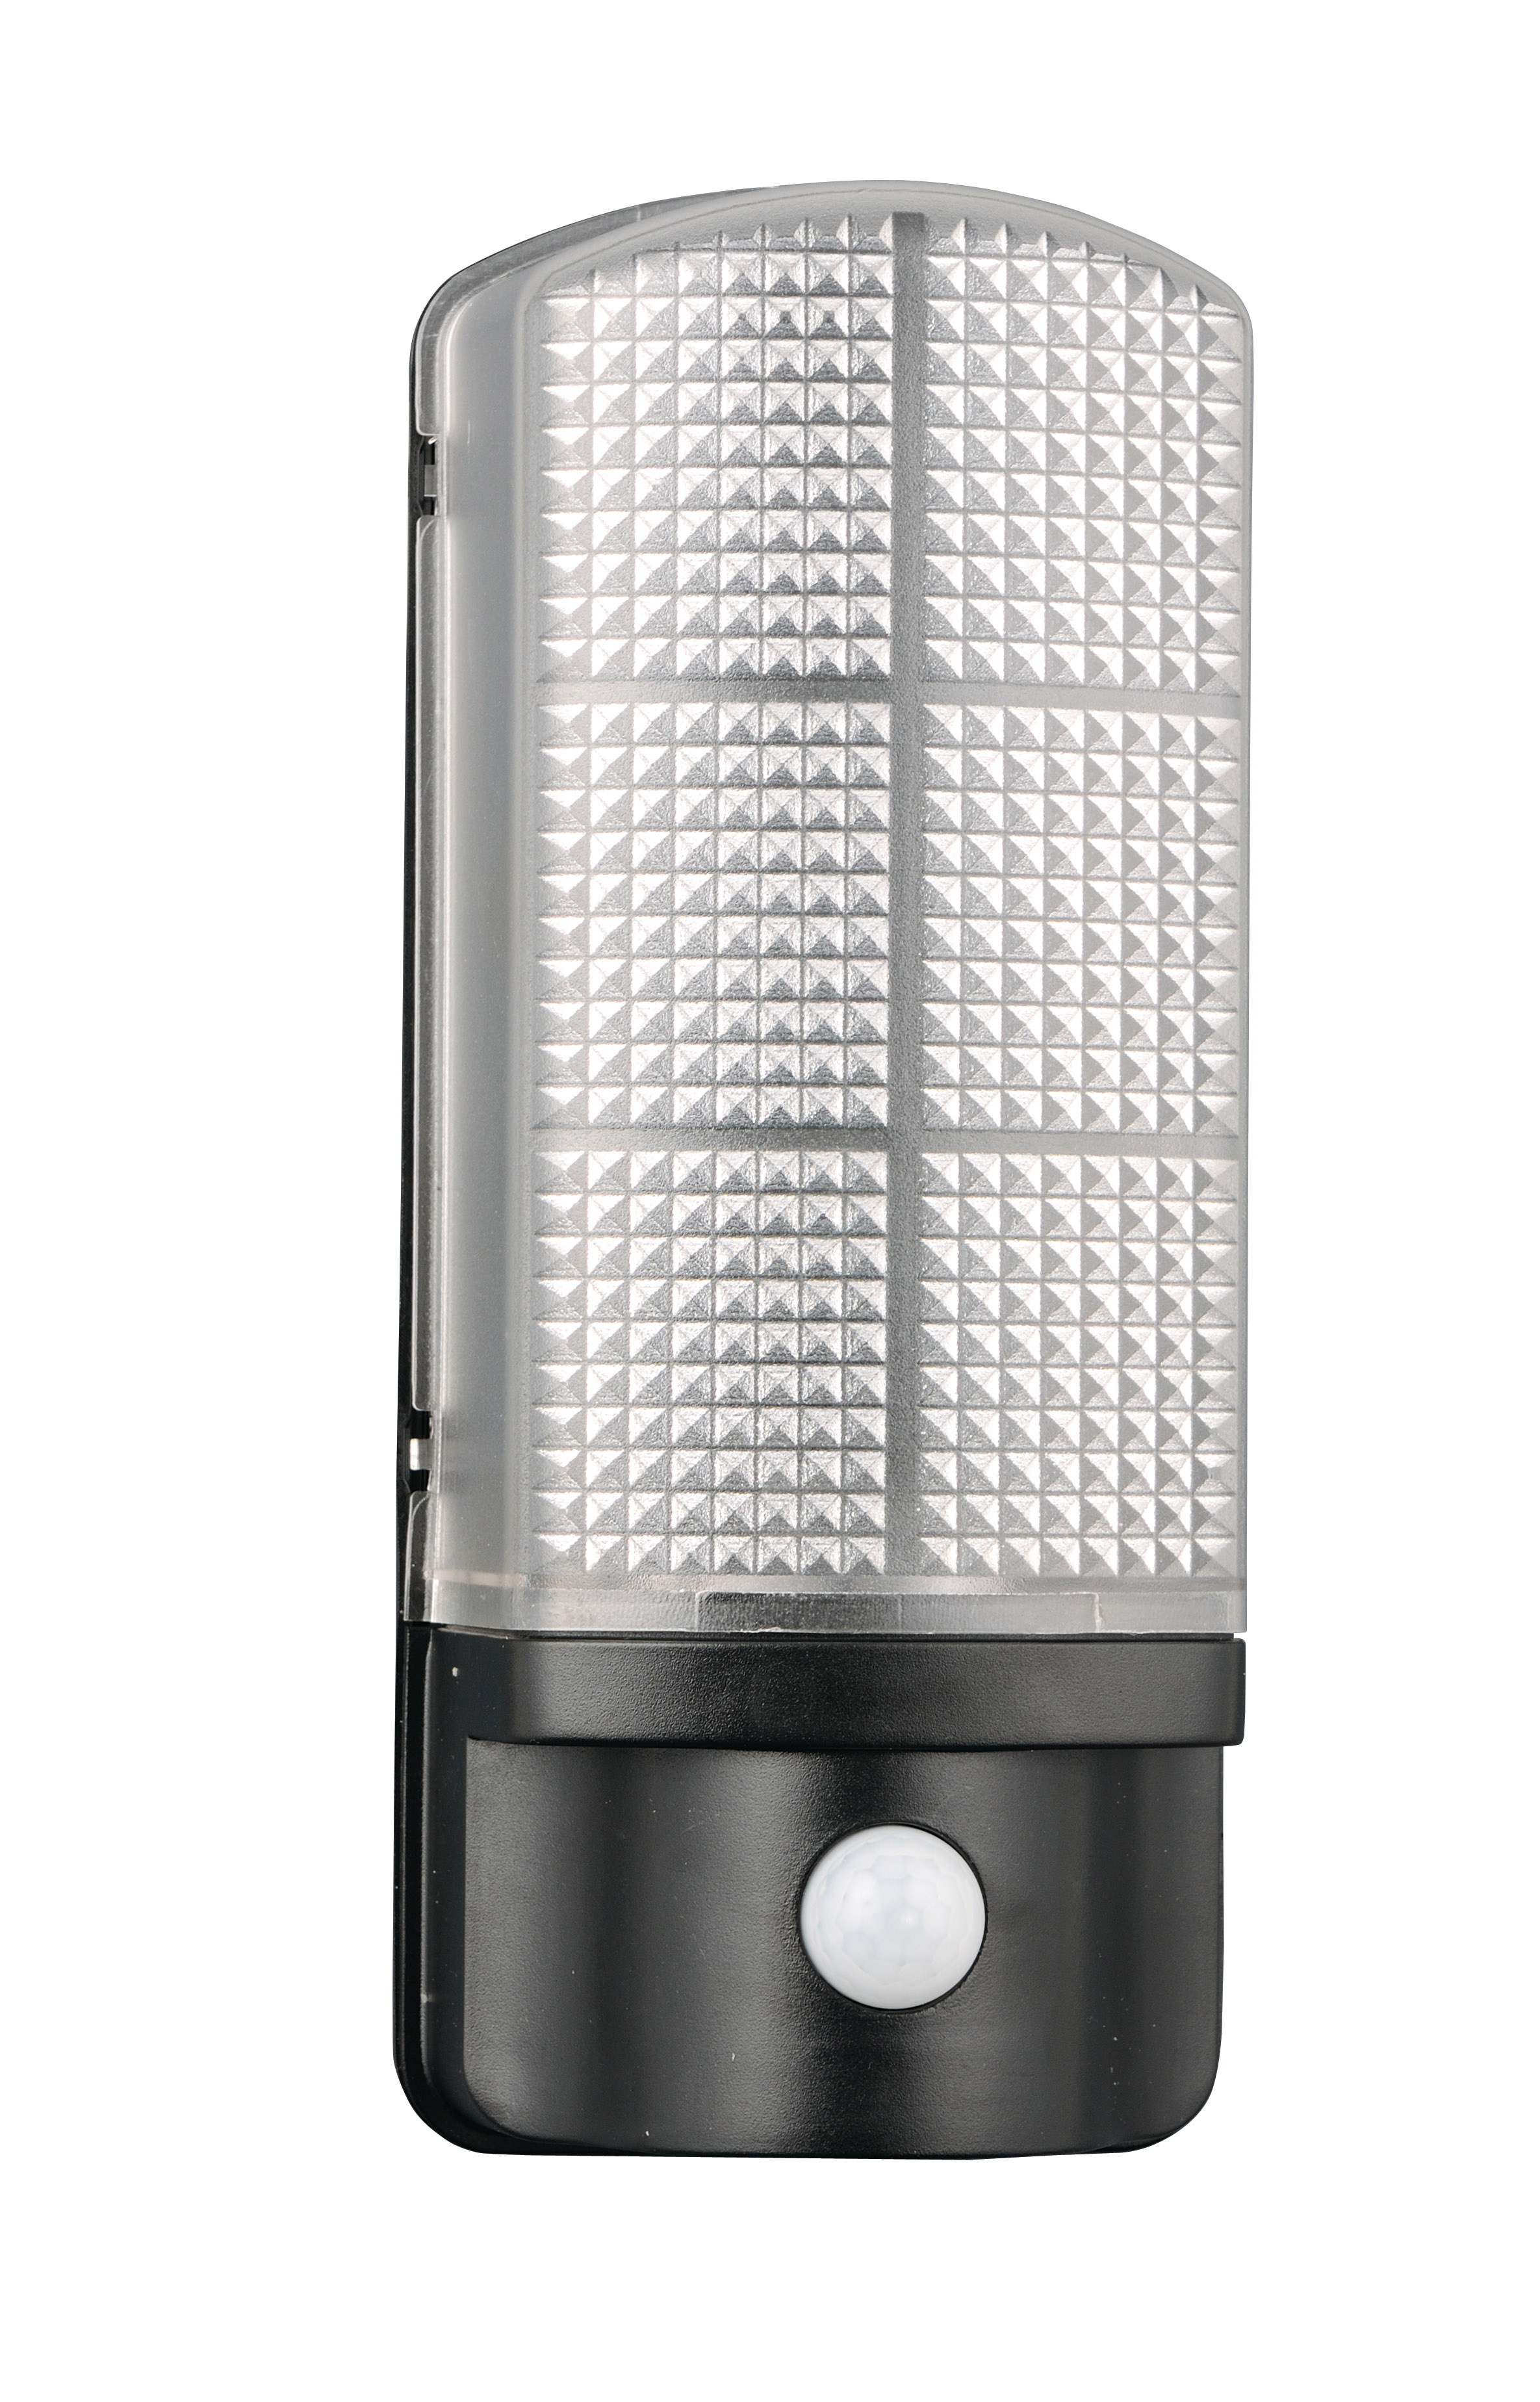 epping led exterior wall light with day night photocell with pir